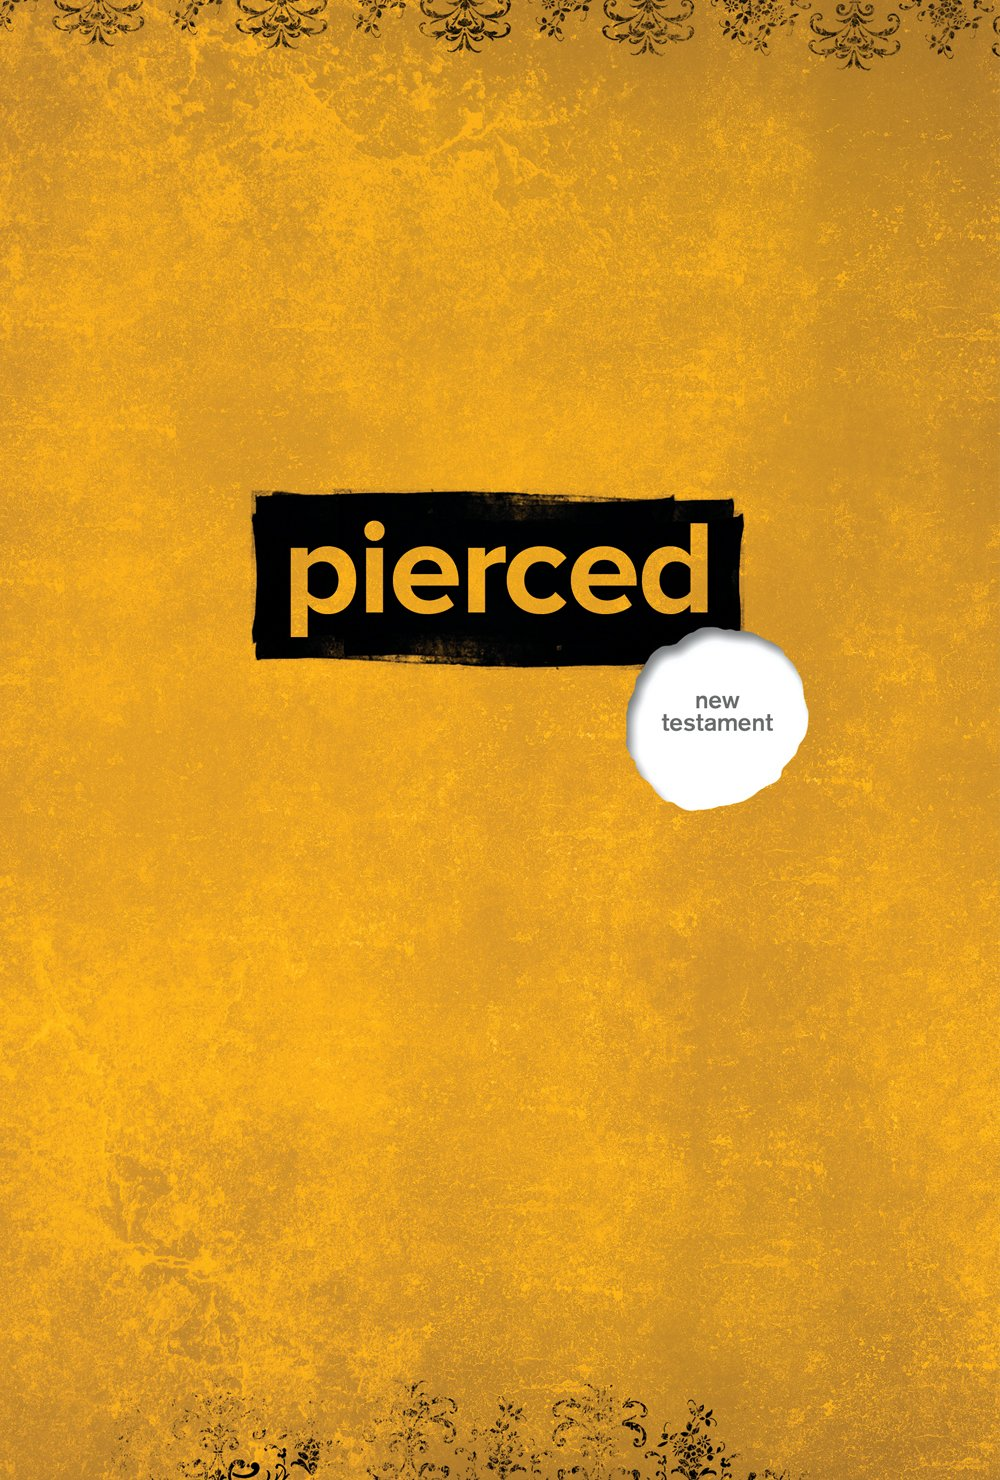 Download Pierced: The New Testament: A New Testament Devotional Experience by Youth and for Youth pdf